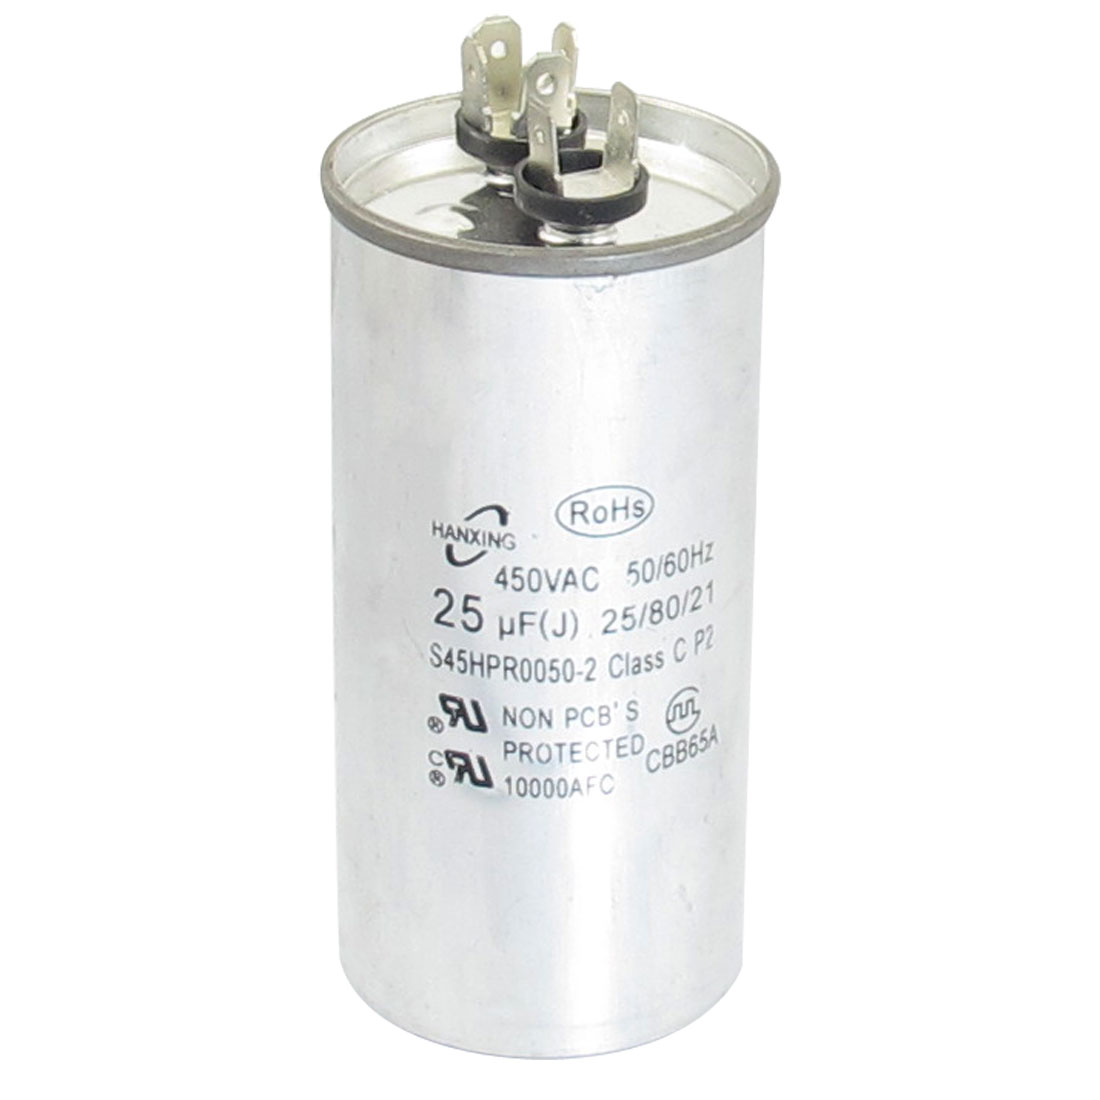 AC 450V 25uF Motor Run Air Conditioner Capacitor CBB65A